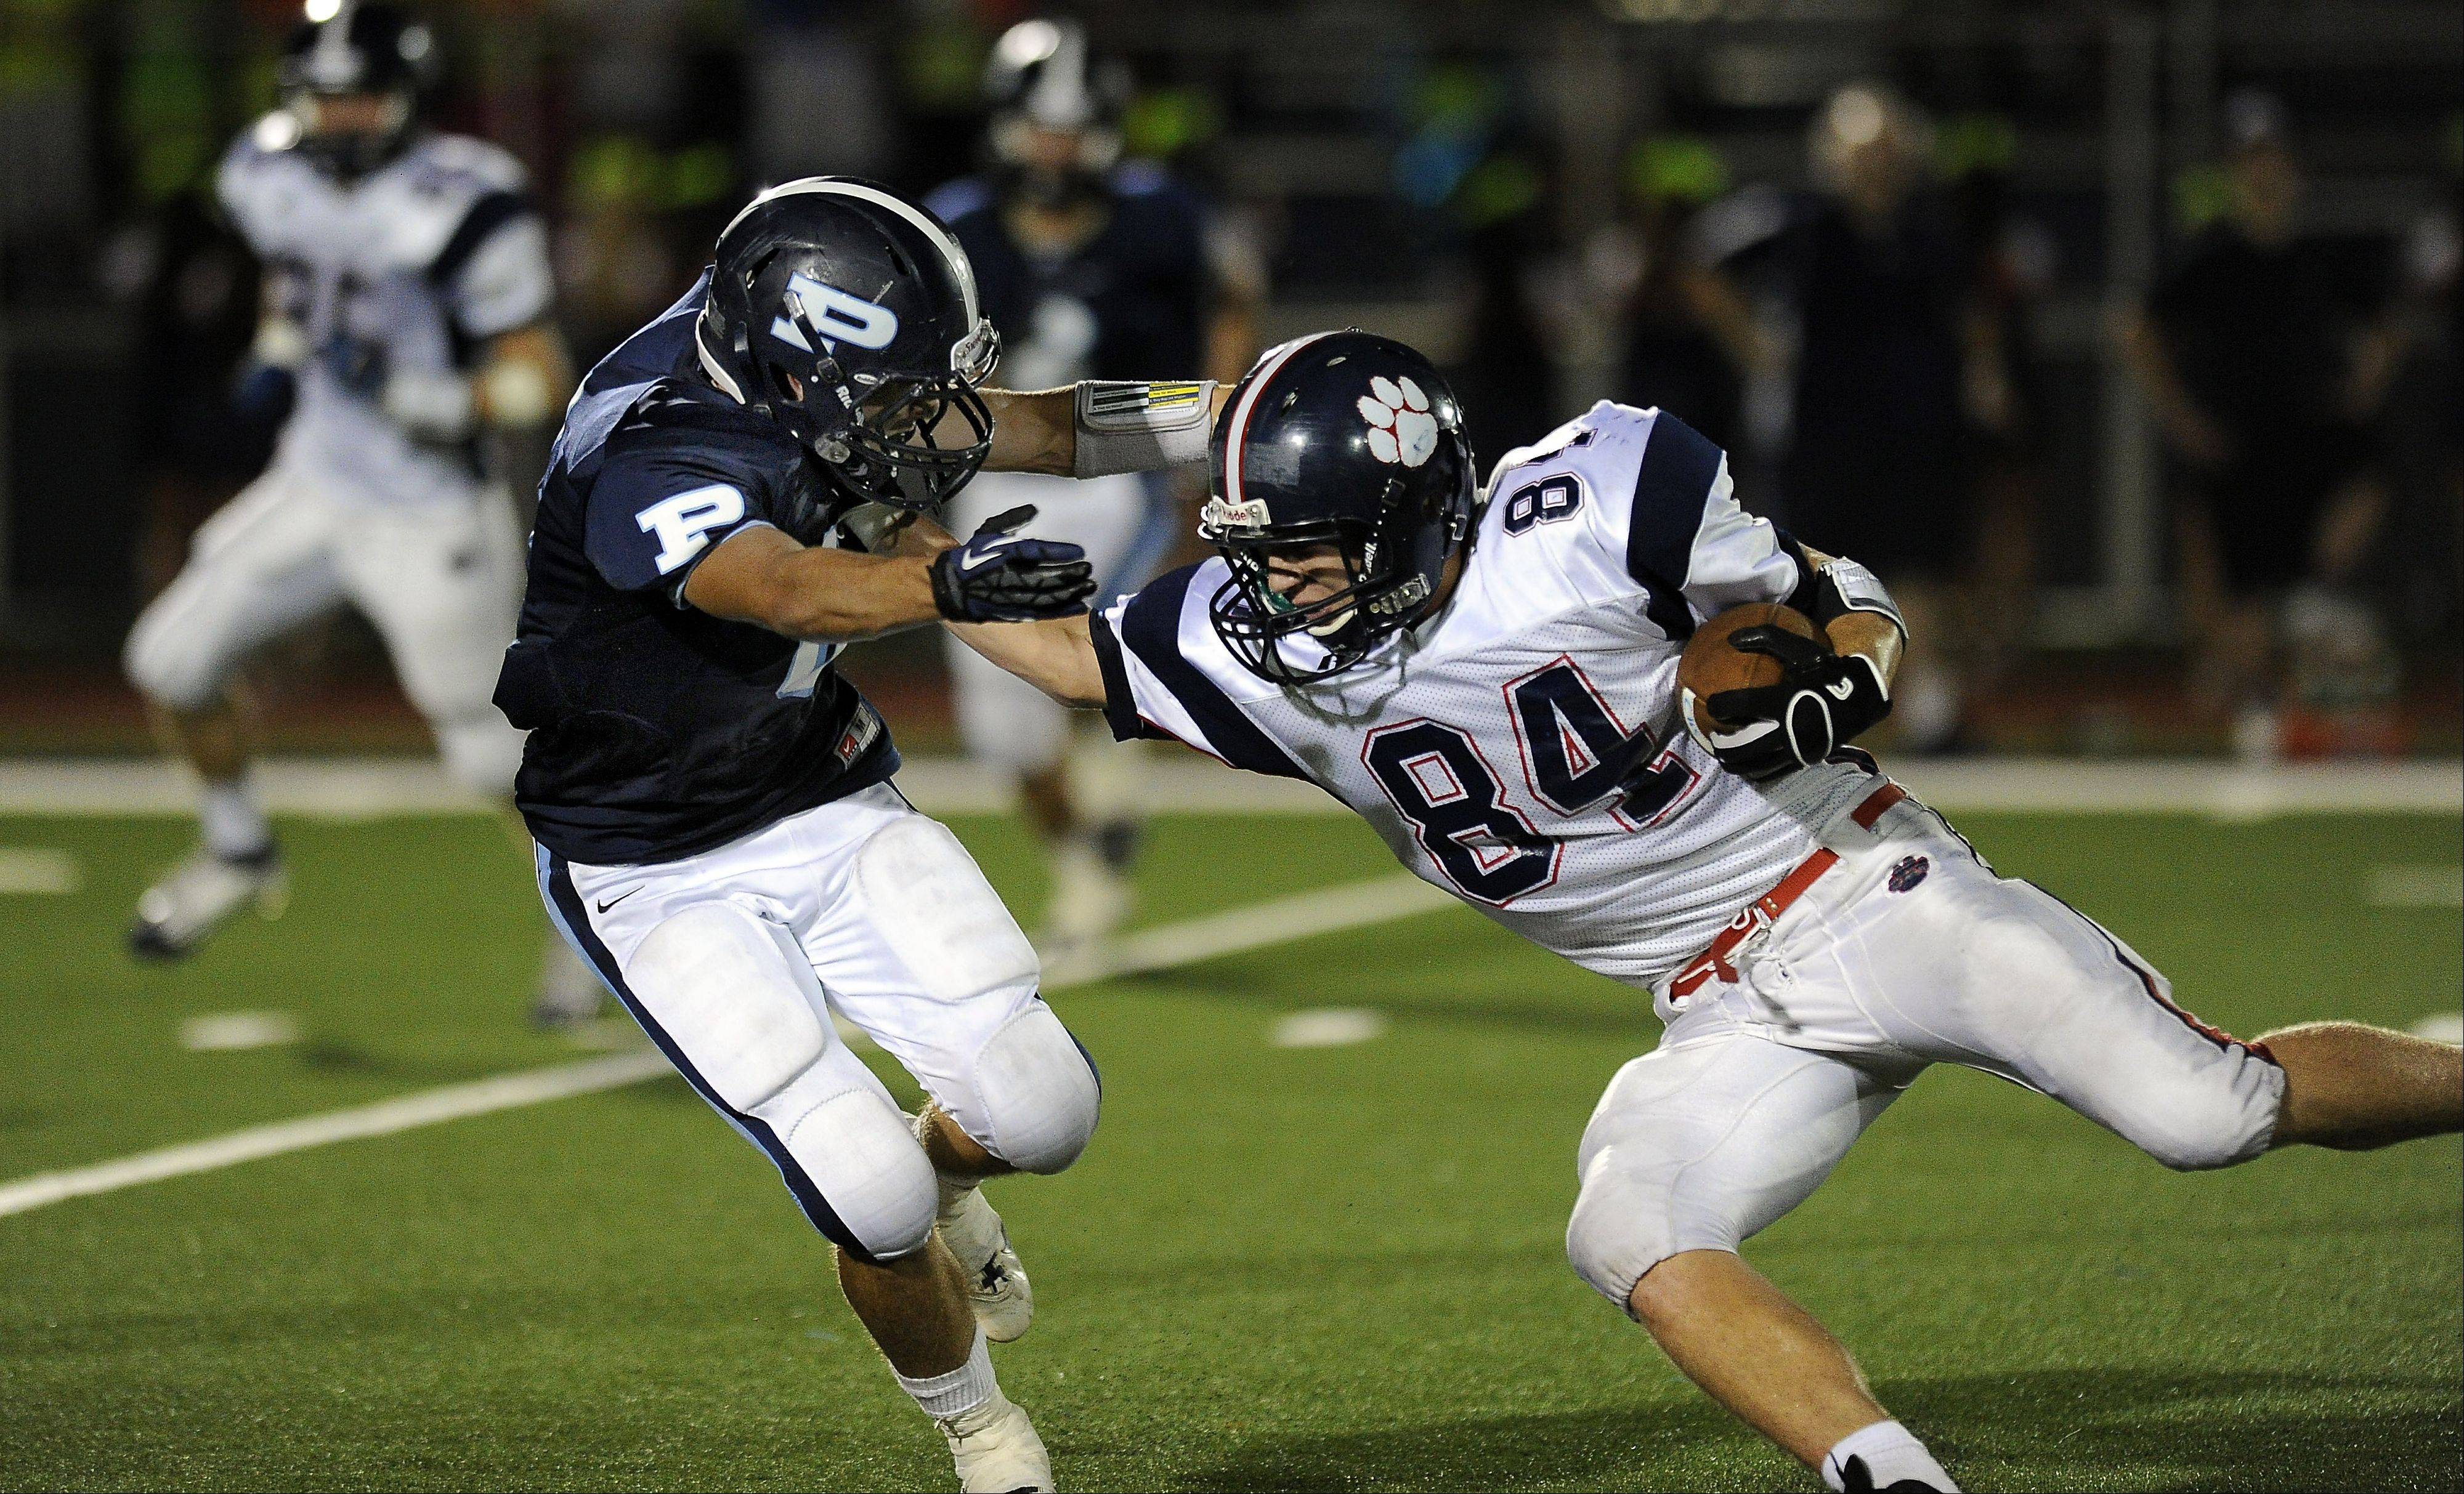 Images: Conant vs. Prospect football